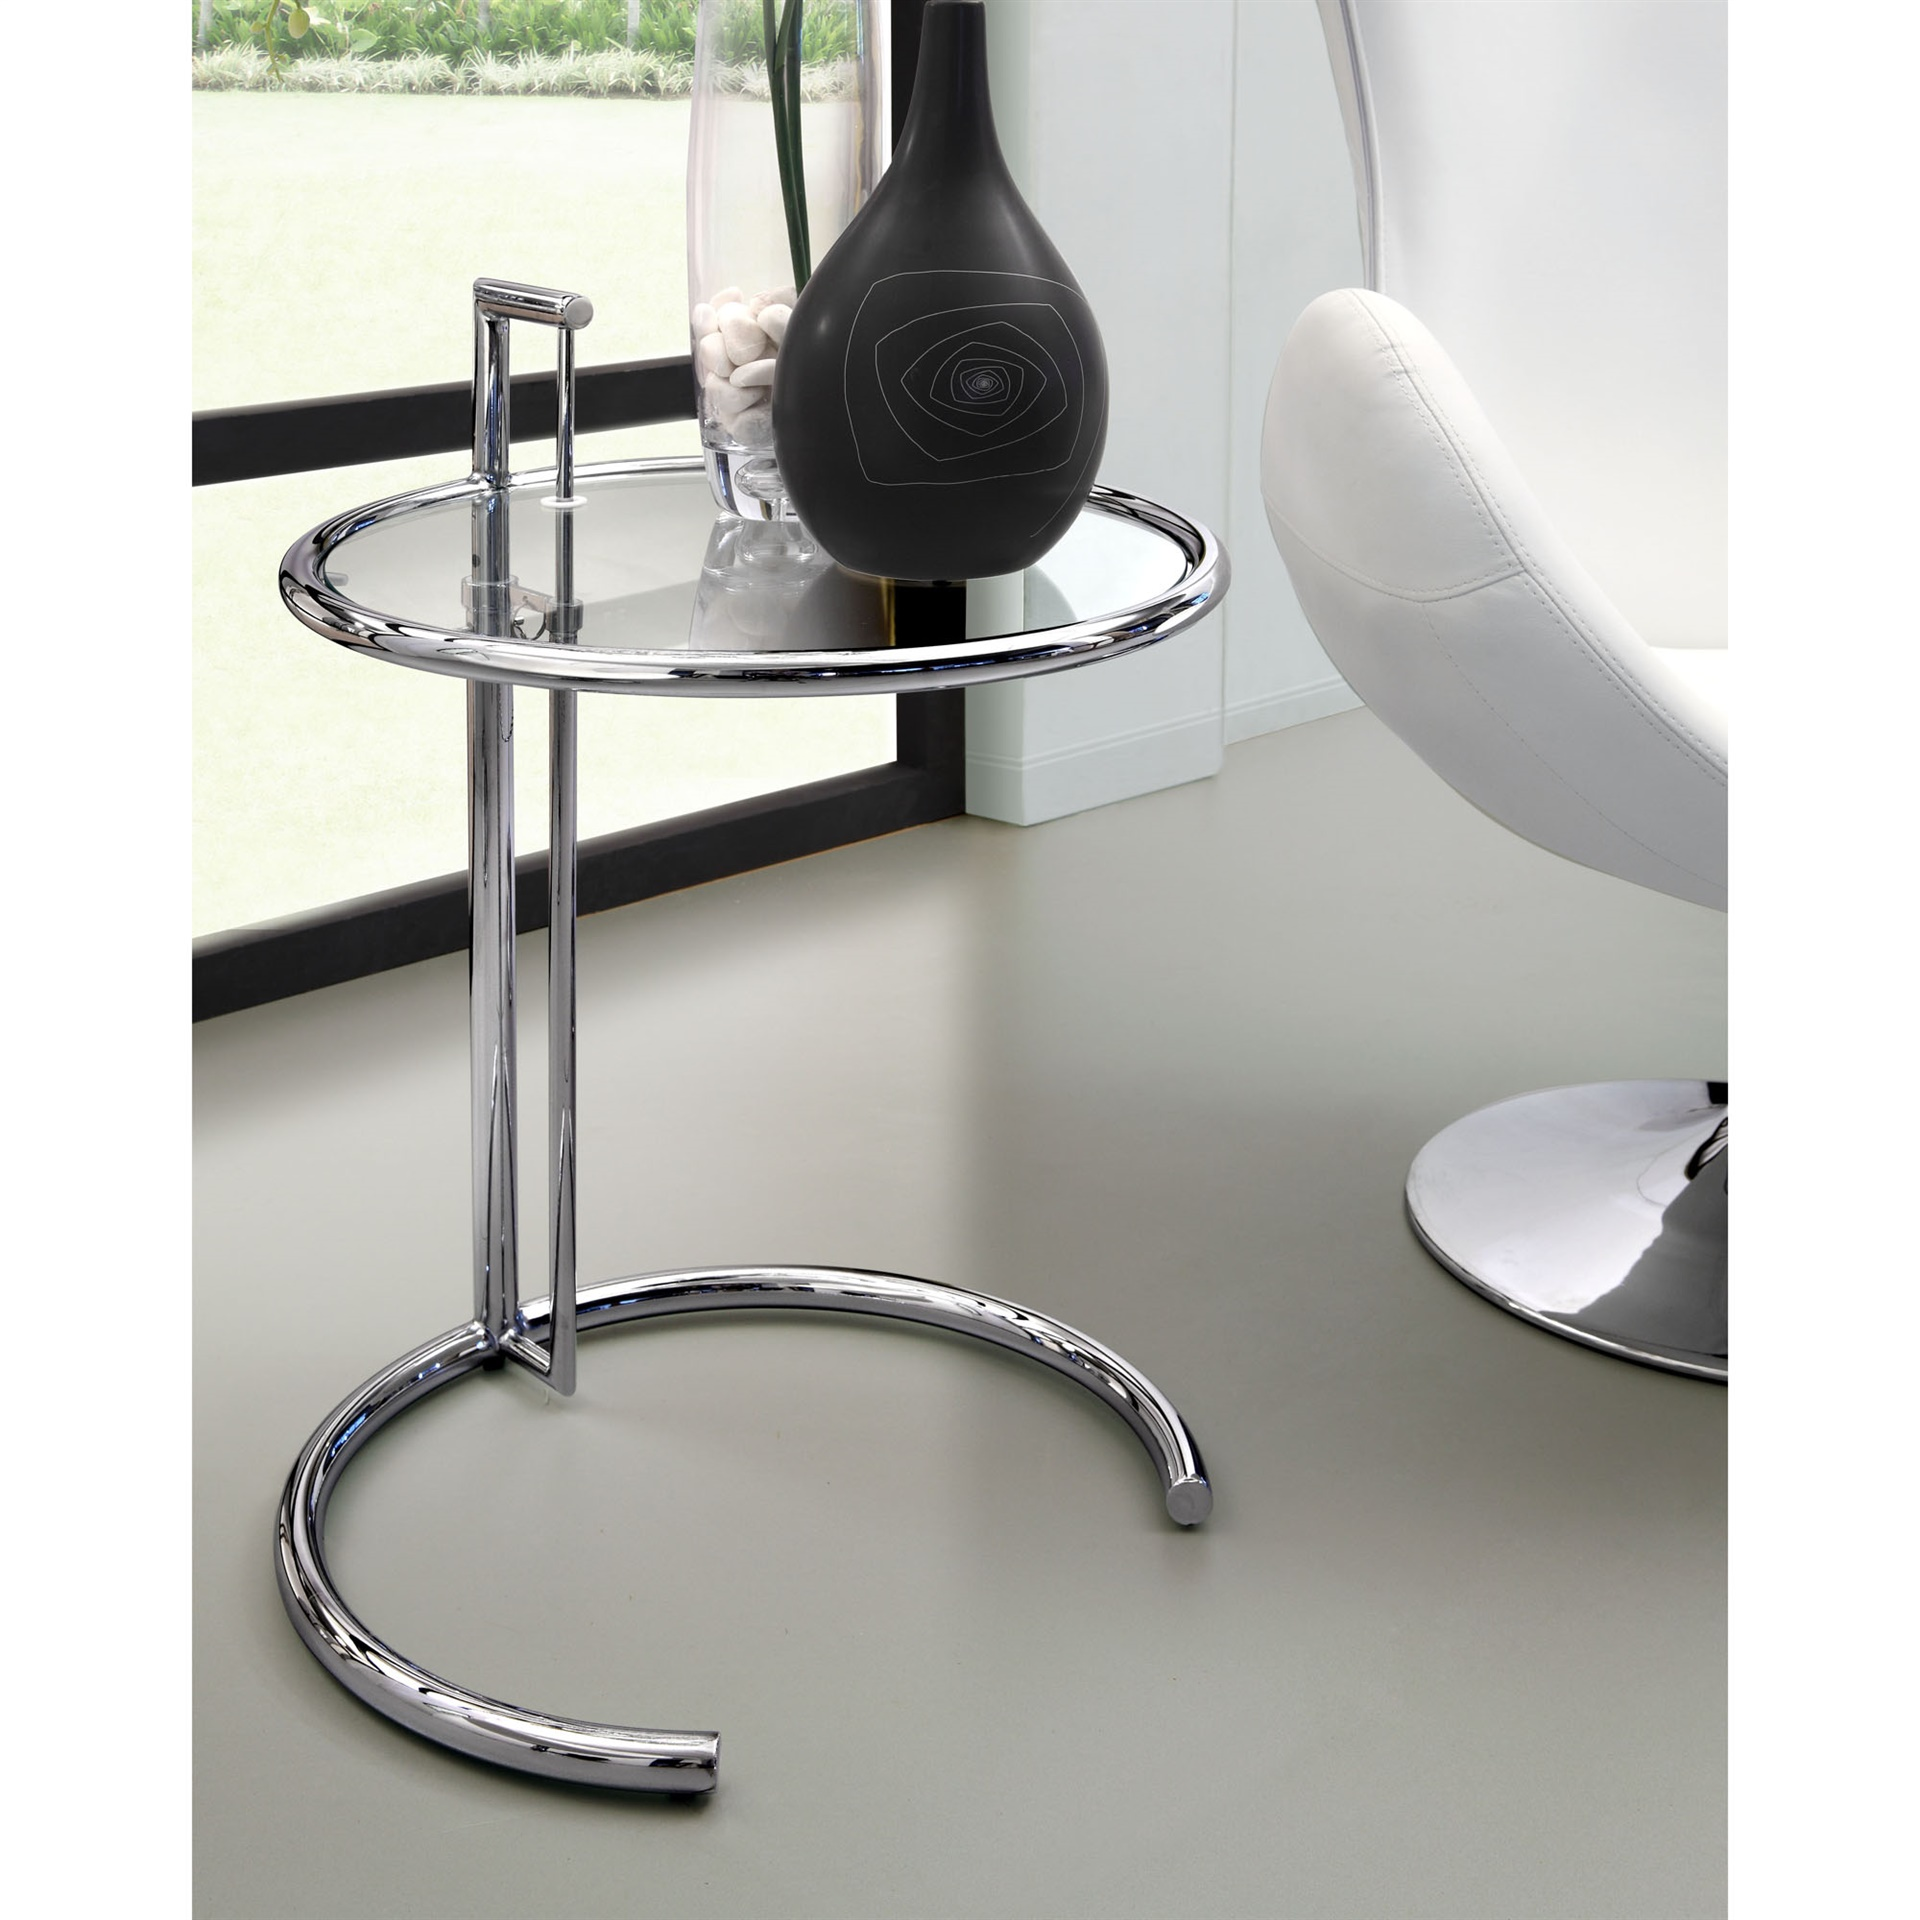 Eileen Gray Side Table - Eileen gray end table